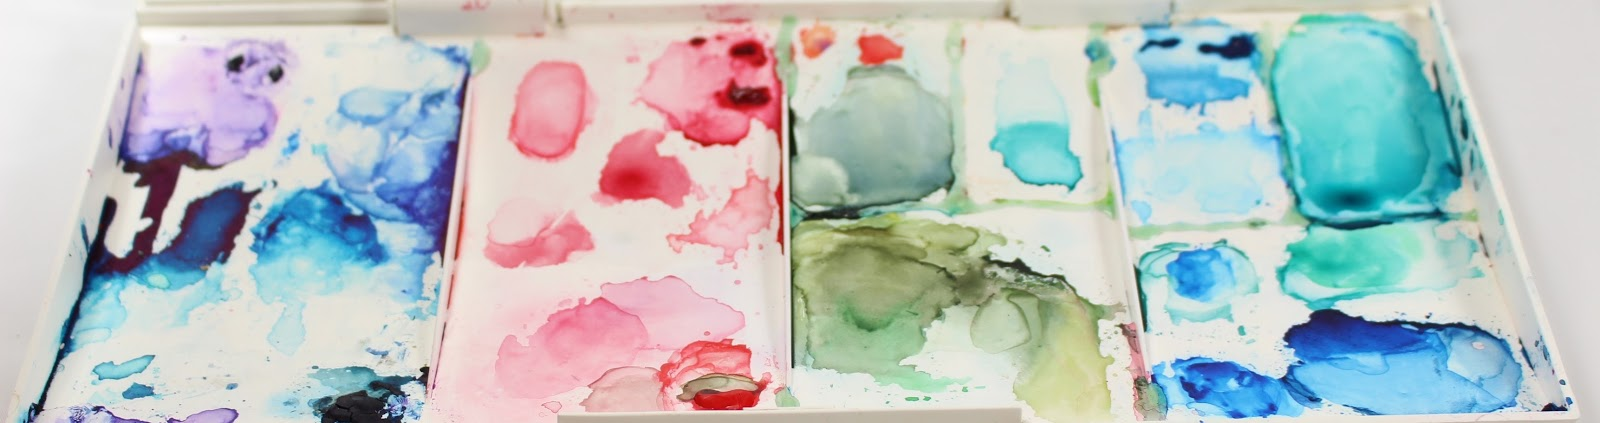 How To Travel With Art Supplies Pinklemonade Artistry